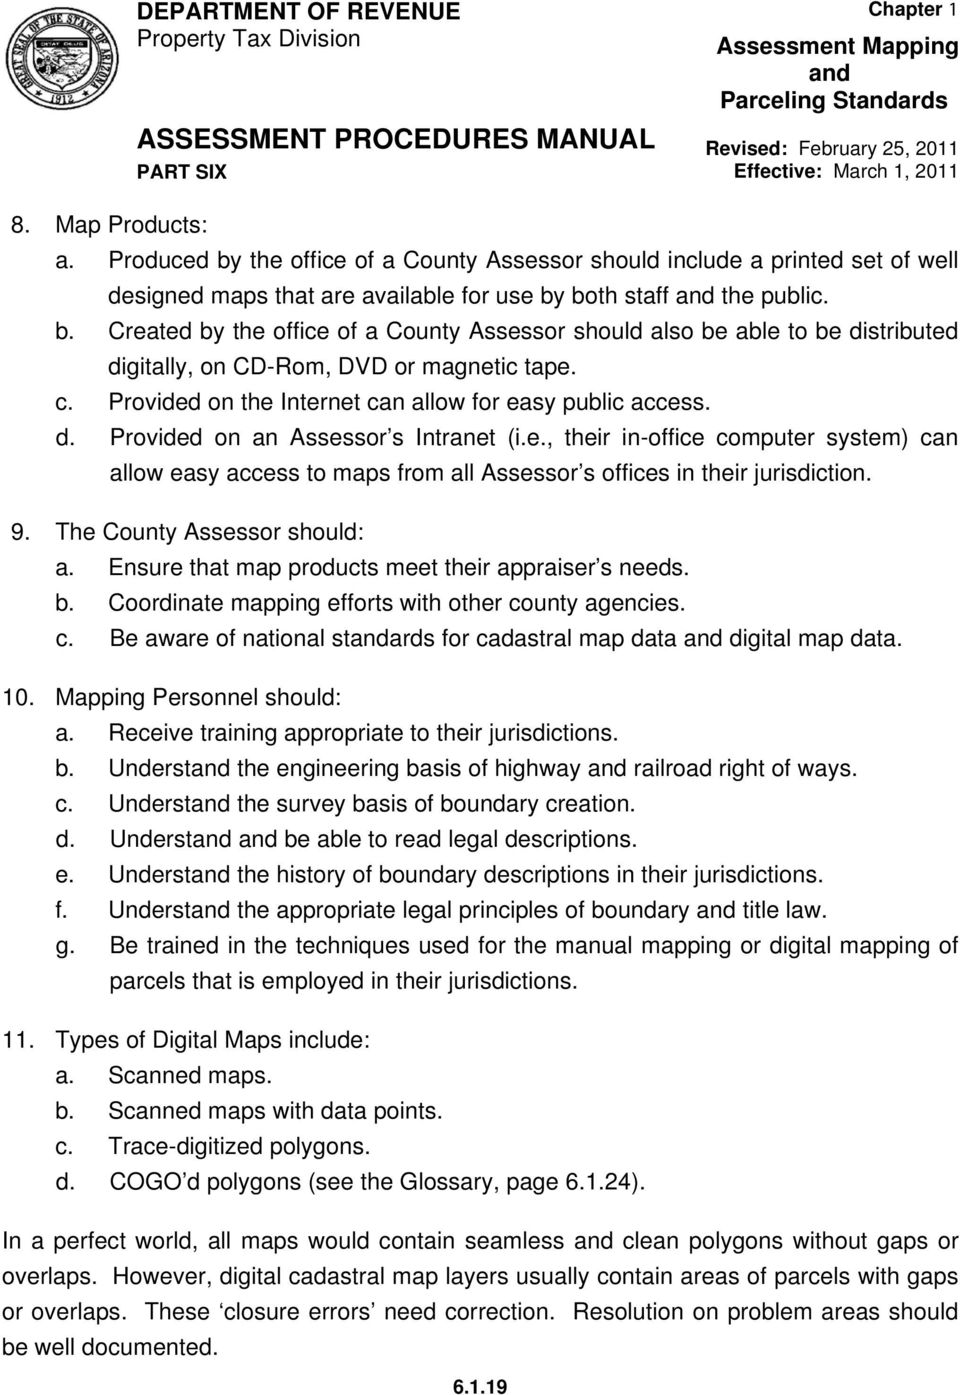 9. The County Assessor should: a. Ensure that map products meet their appraiser s needs. b. Coordinate mapping efforts with other co